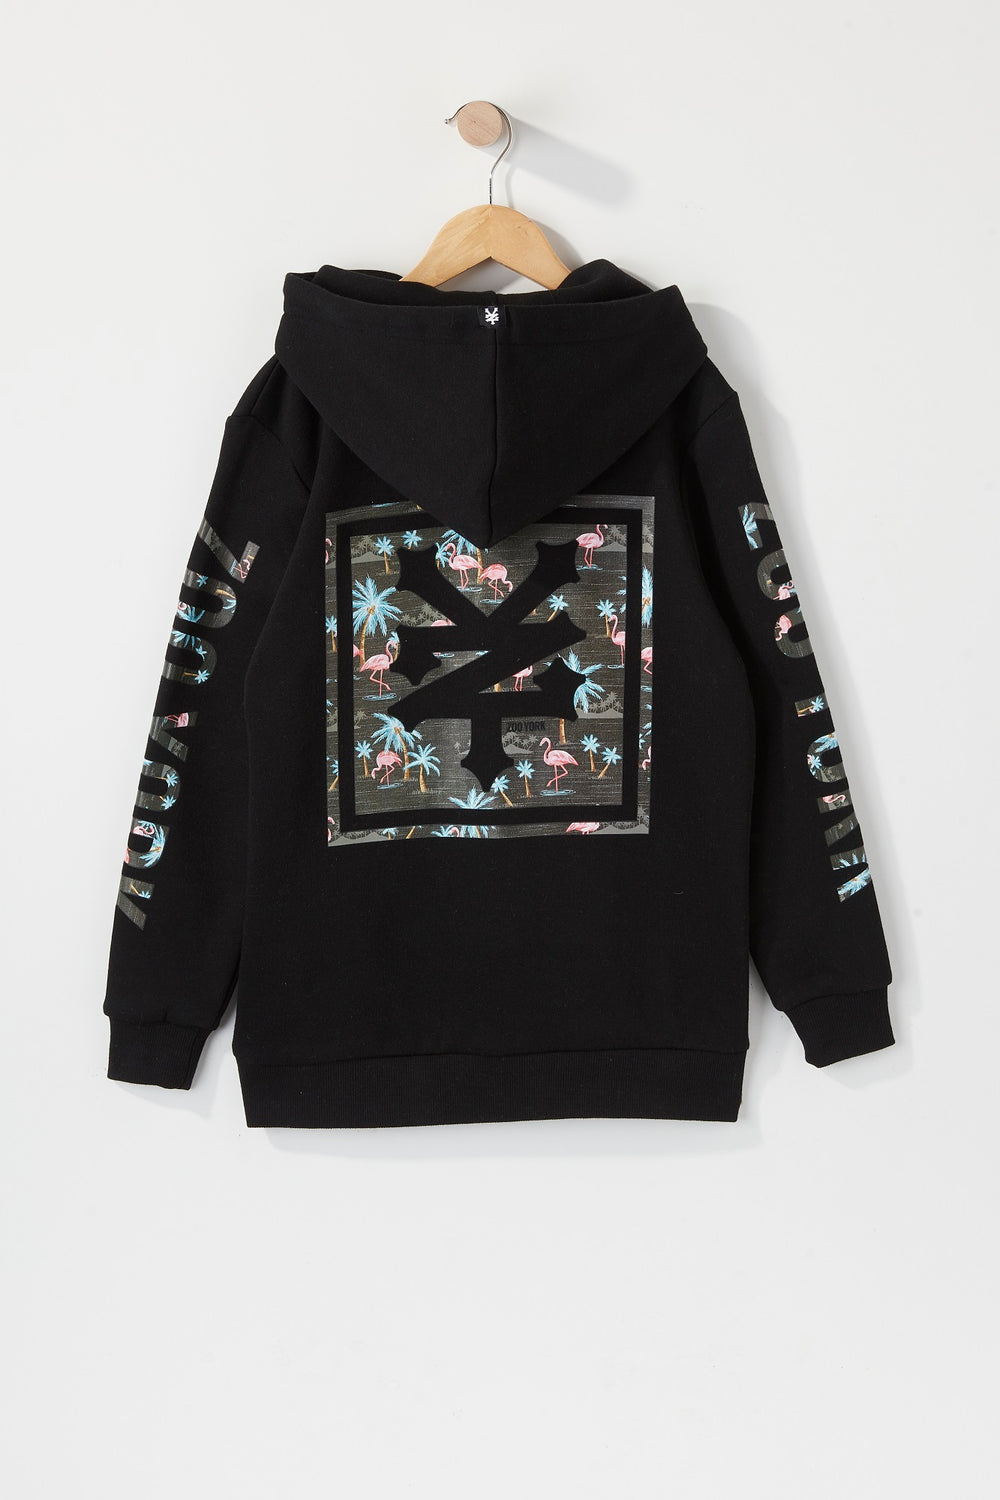 Zoo York Boys Pink Flamingo Logo Hoodie Black